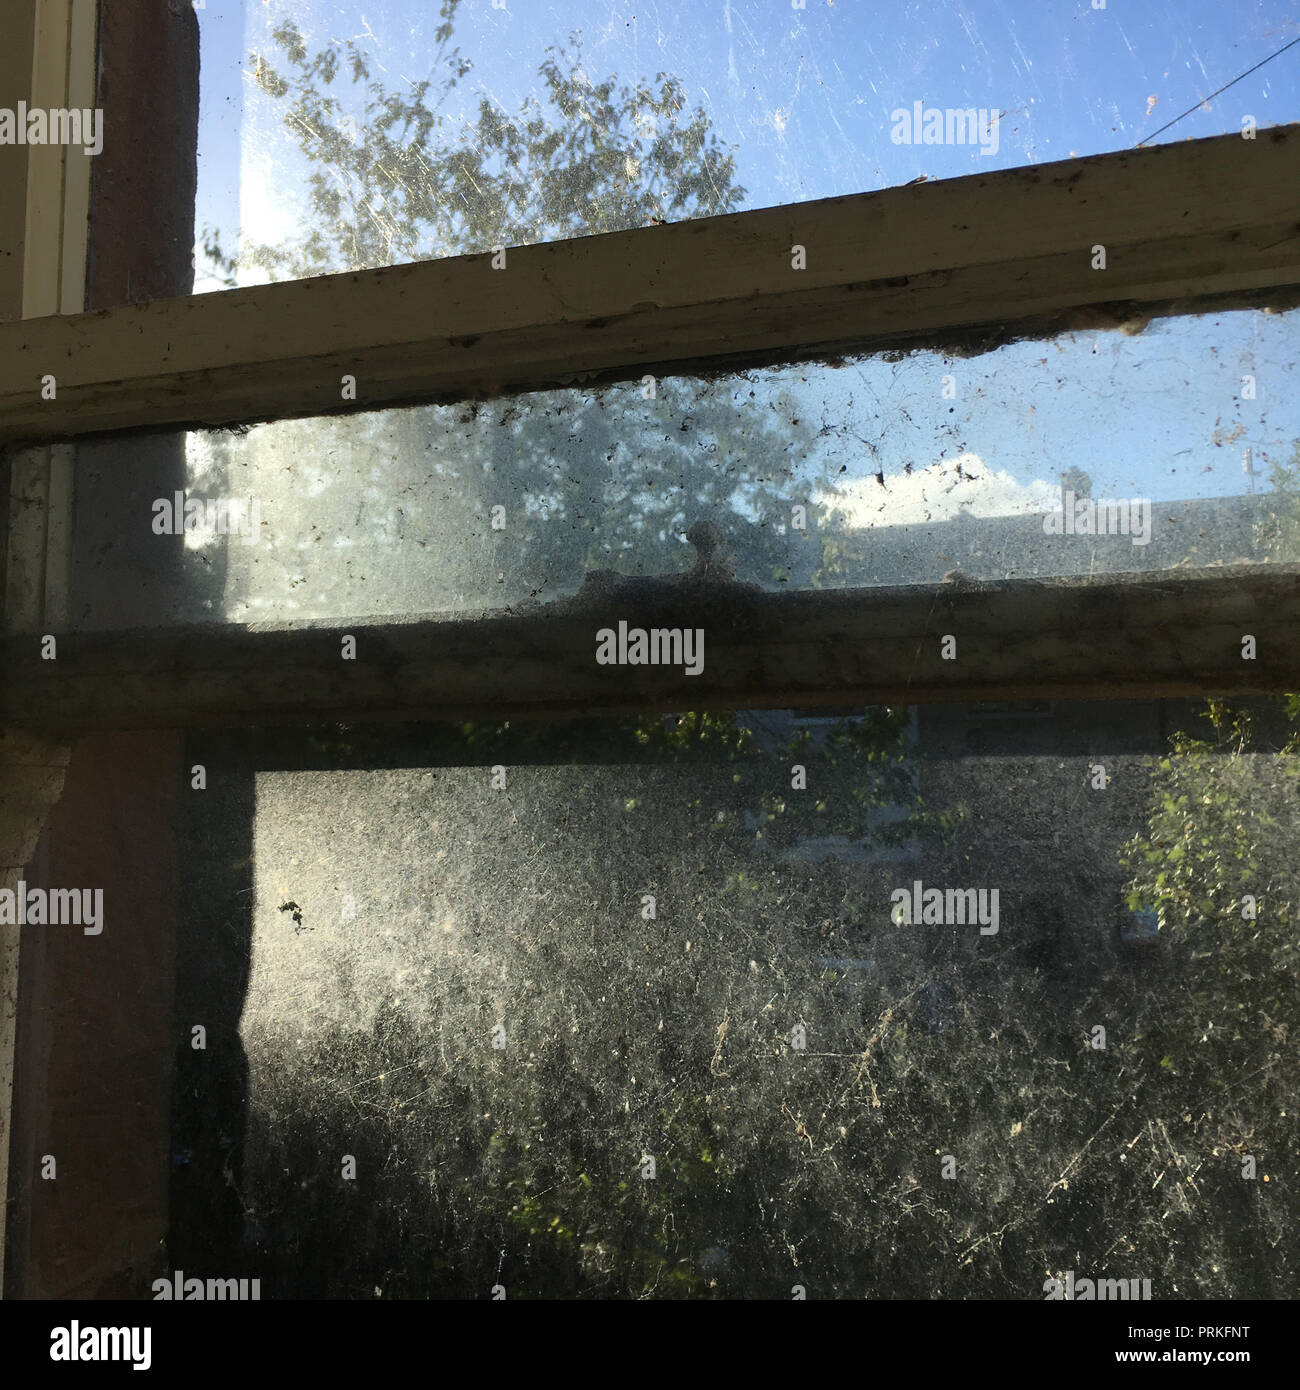 Spiders web and window, in Glasgow, Scotland. - Stock Image